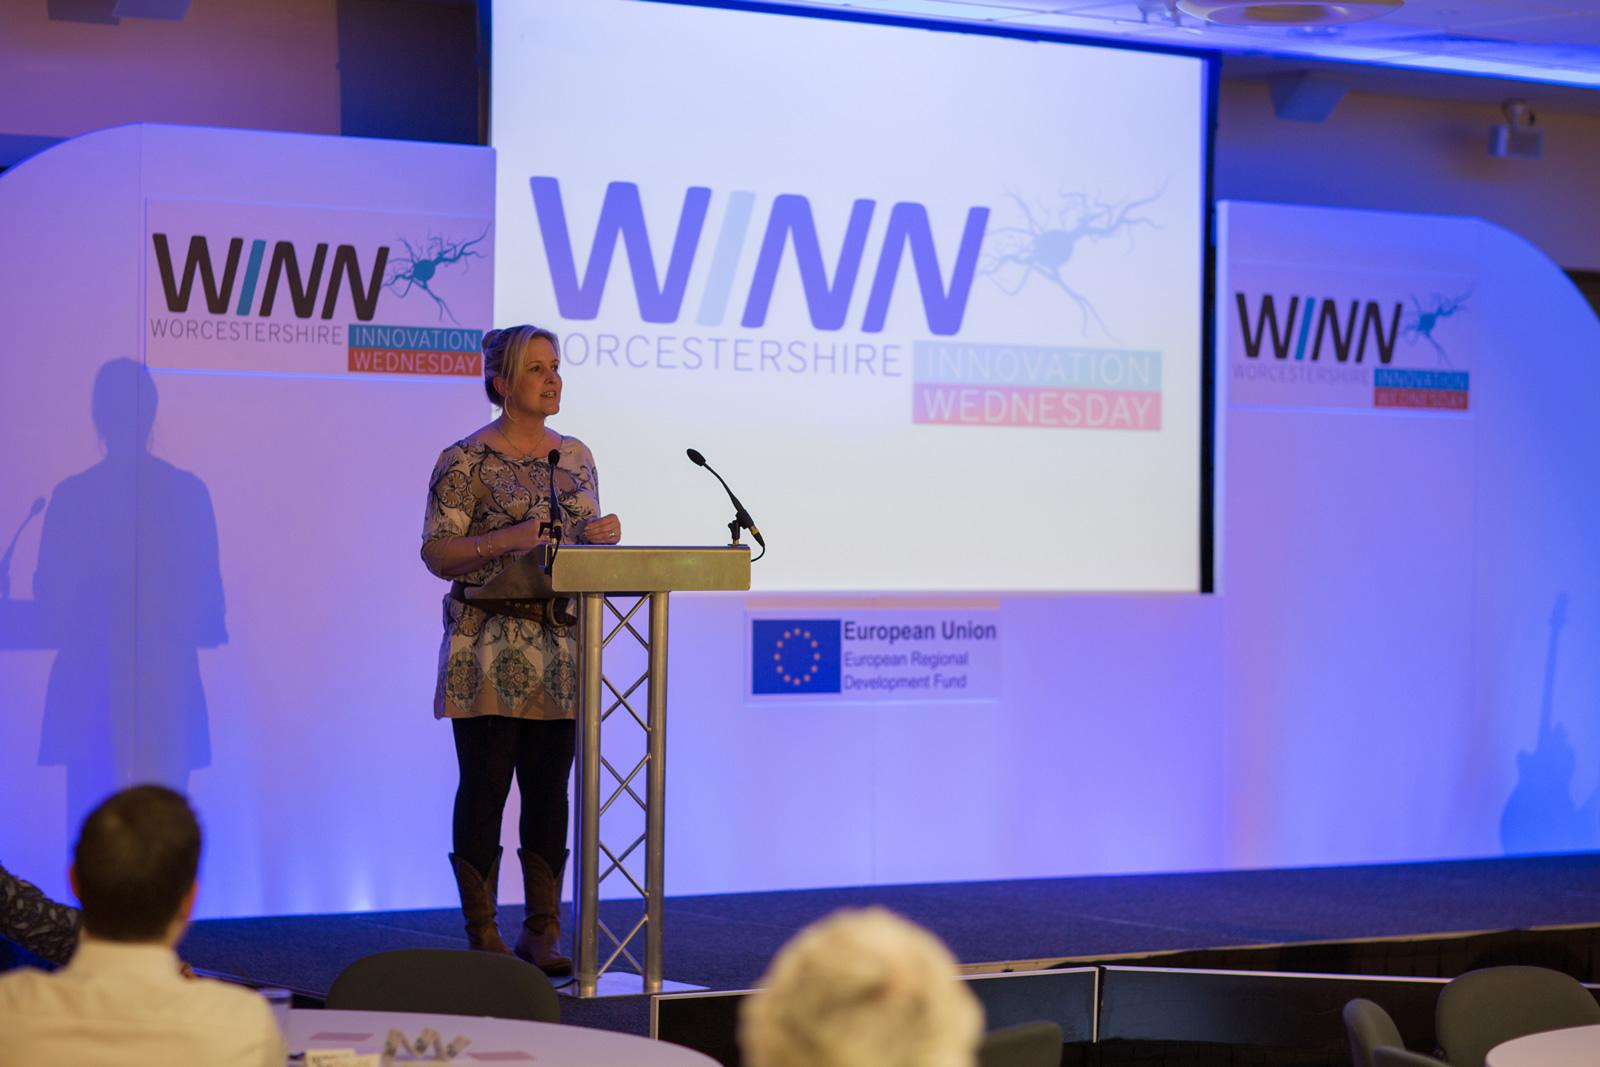 Entry to the Great Things event is free and access to presentations and workshops with industry sector leaders is £5 per ticket, bookable online at the WINN website, winn-hub.com.